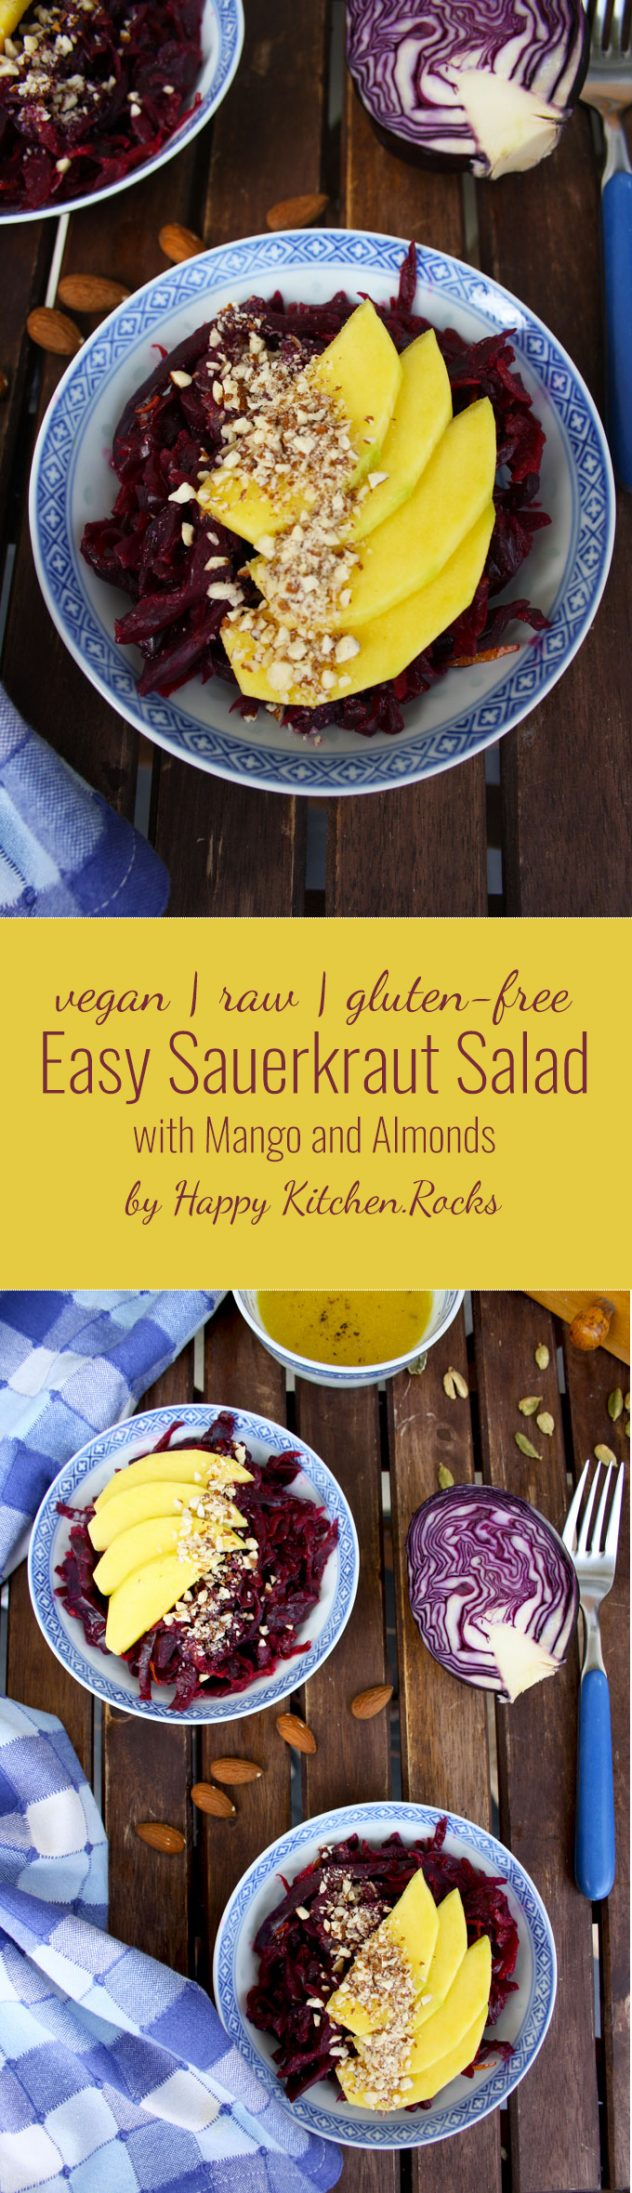 Delicious and healthy 5-minute recipe of a sauerkraut salad with mango, almonds and lemon-cardamom vinaigrette. Vegan, vegetarian, raw, gluten-free.